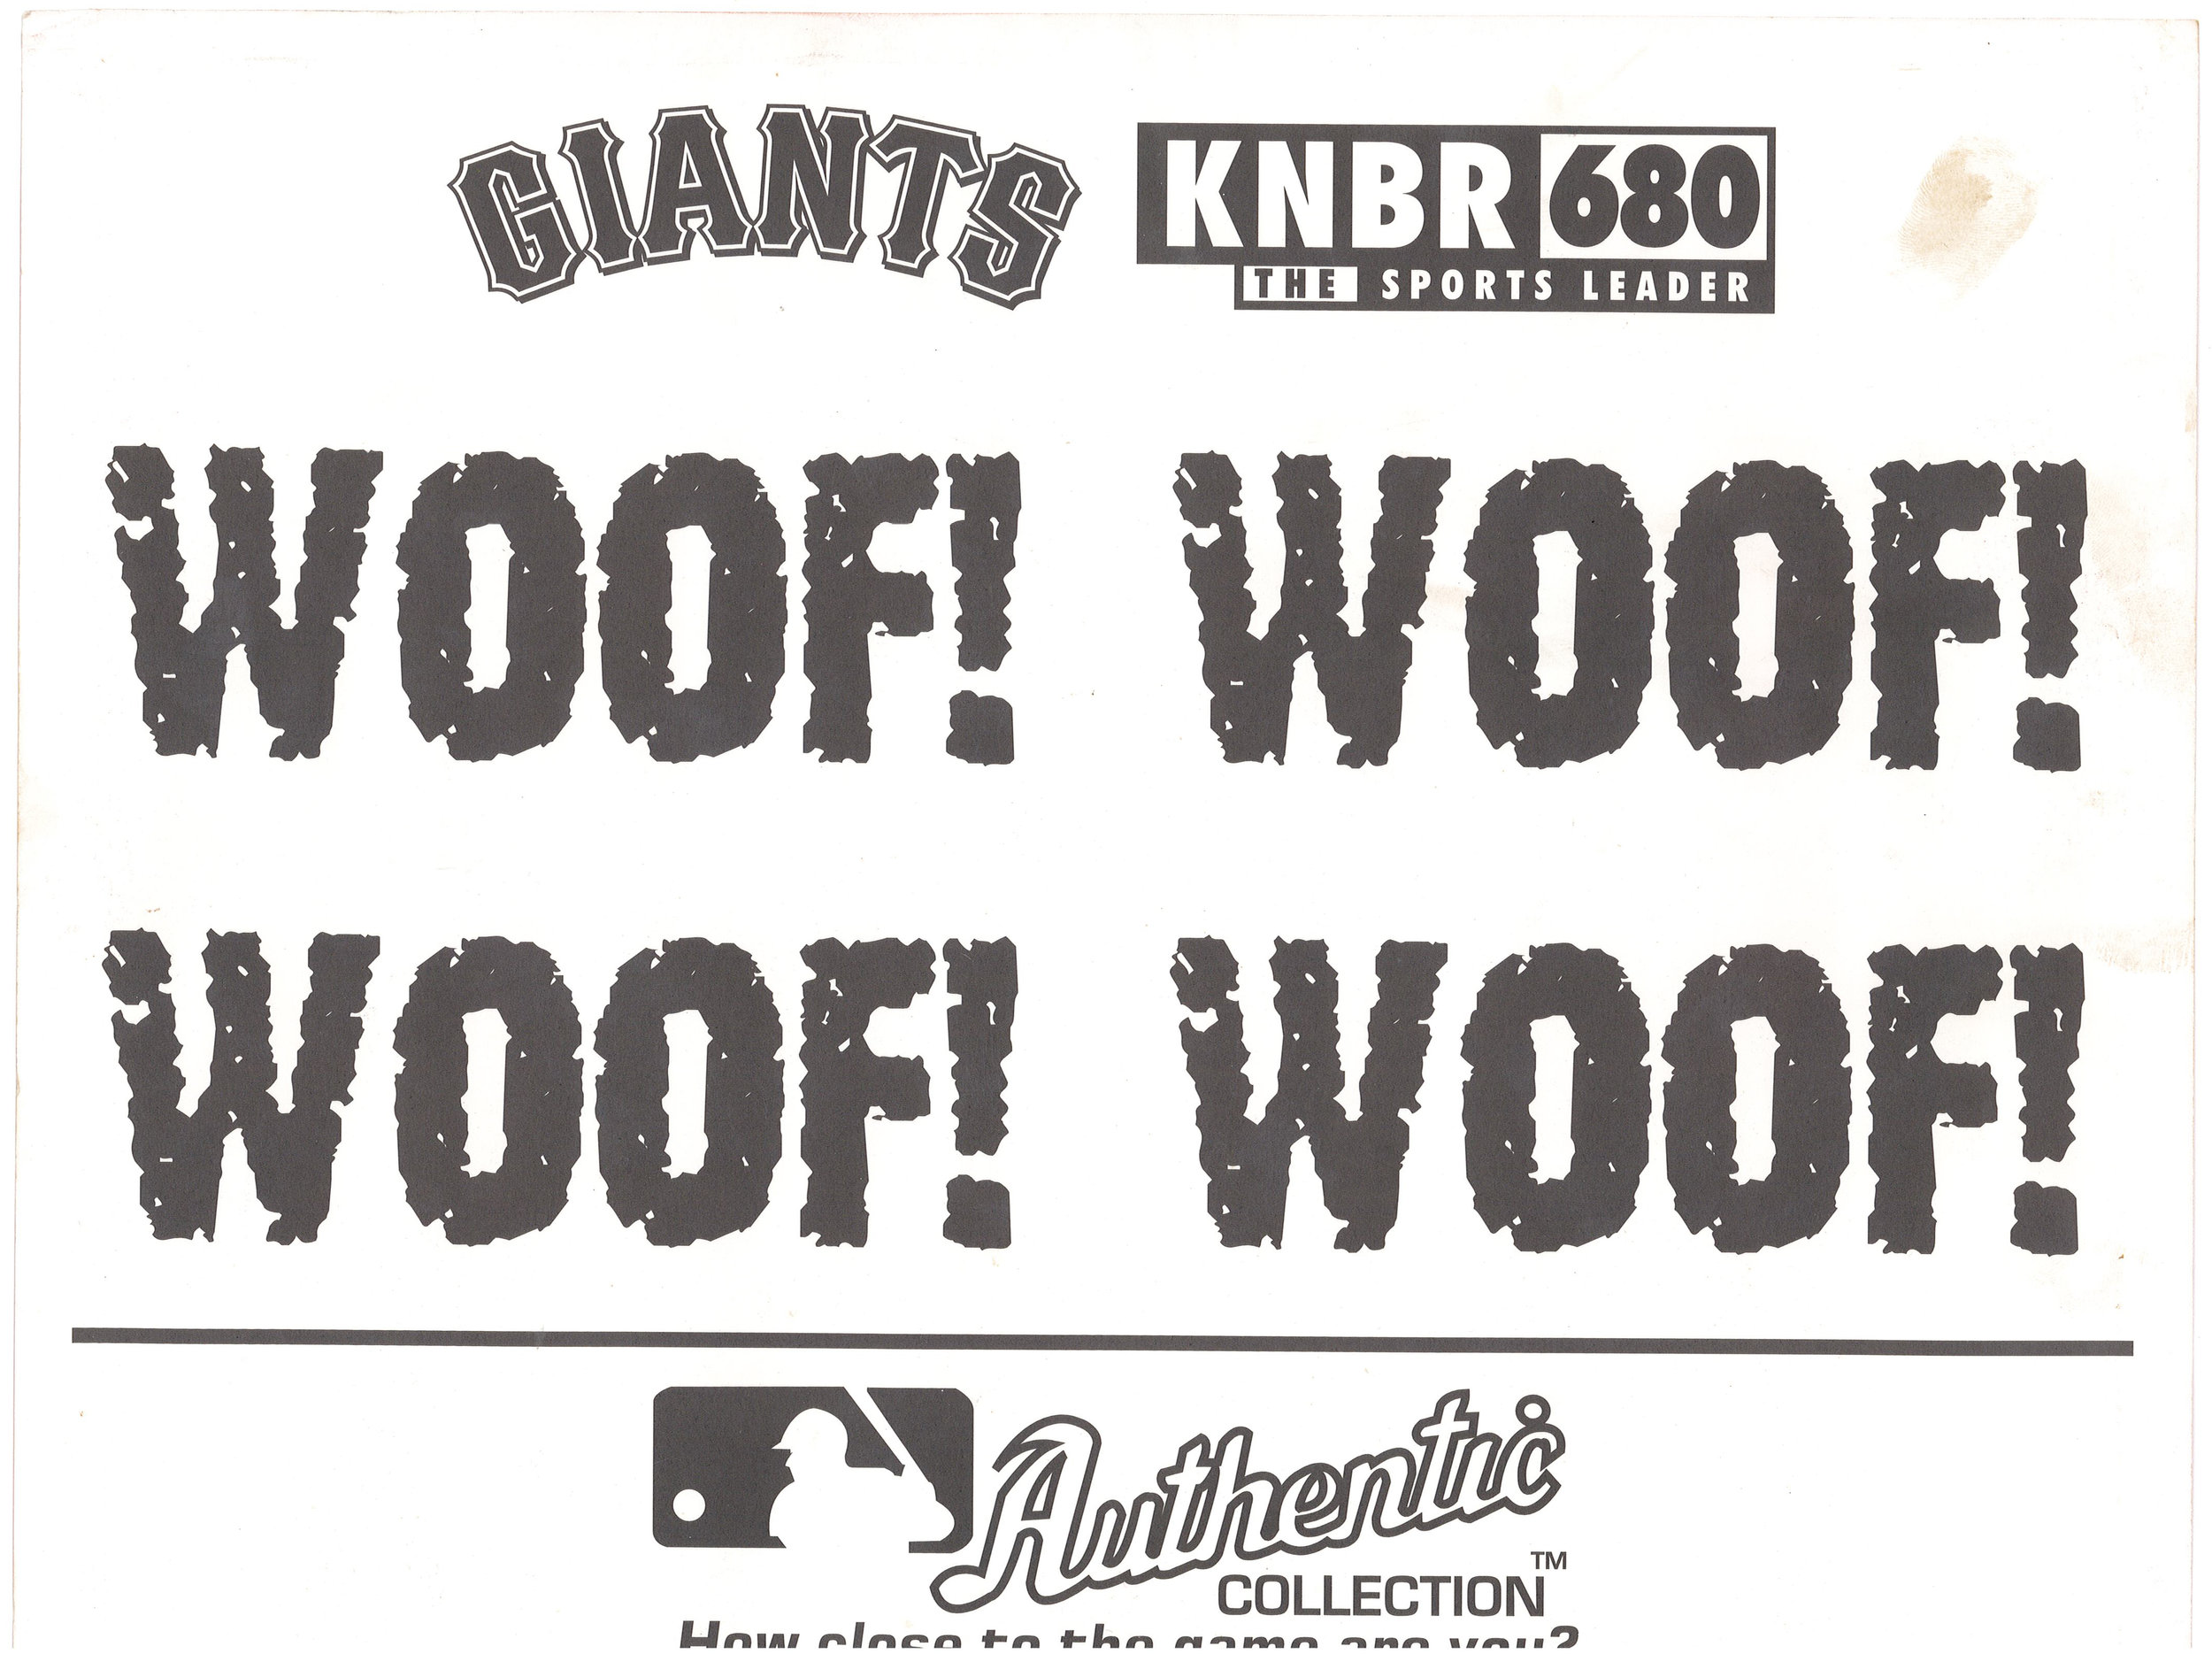 WLWLTDOO-_-EPHEMERA-GIANTS_KNBR-FAN_SIGN-BACK.jpg